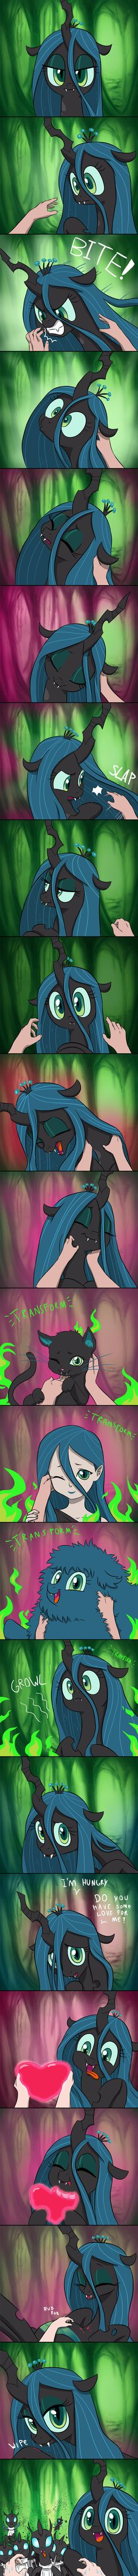 Chrysalis Simulator by doubleWbrothers.deviantart.com on @deviantART